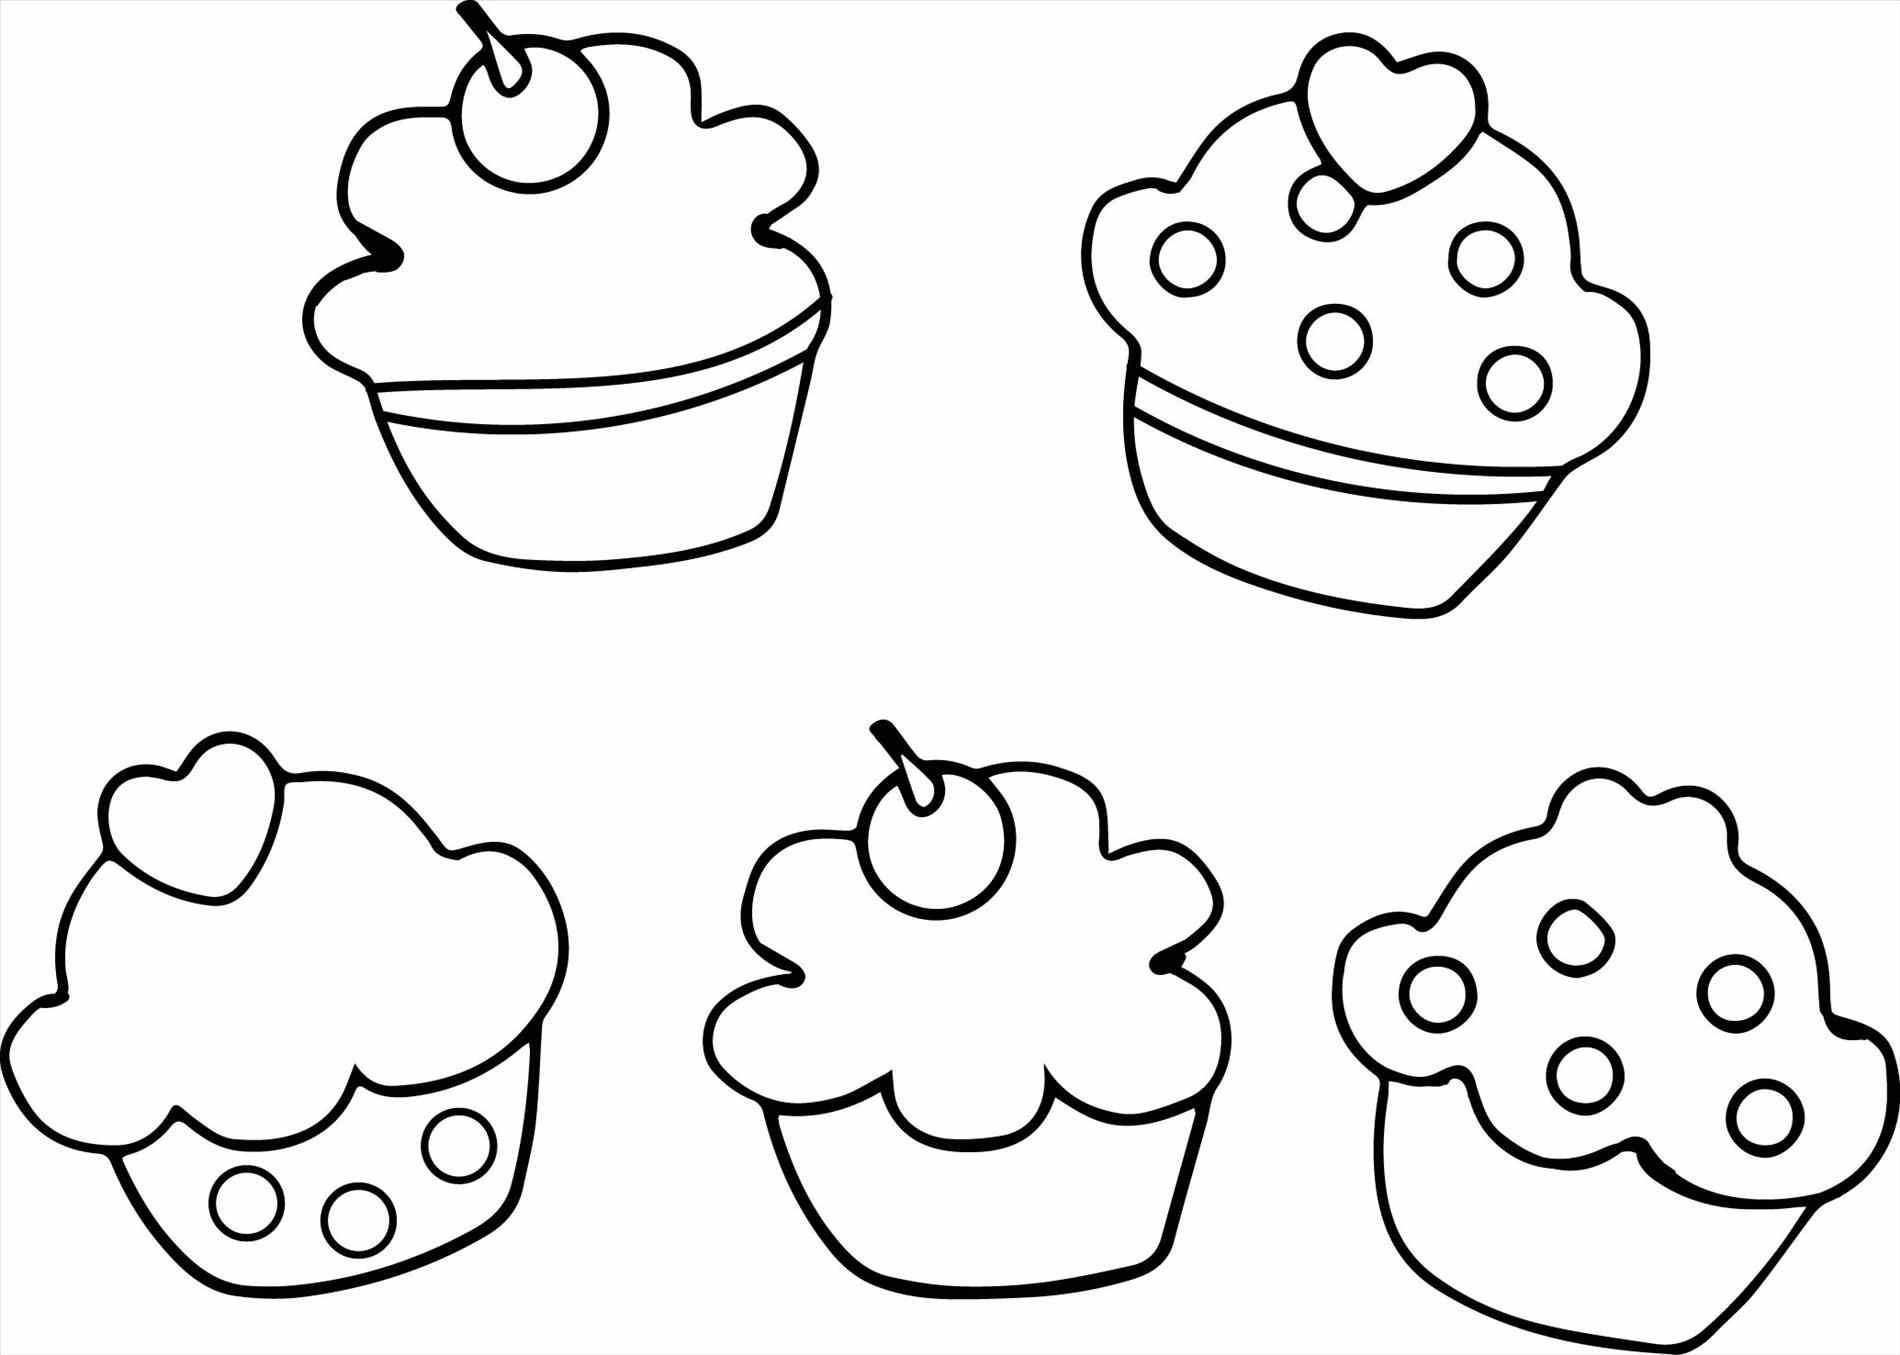 1900x1355 Free Printable Cupcake Coloring Pages For Kids Cupcakes Studynow